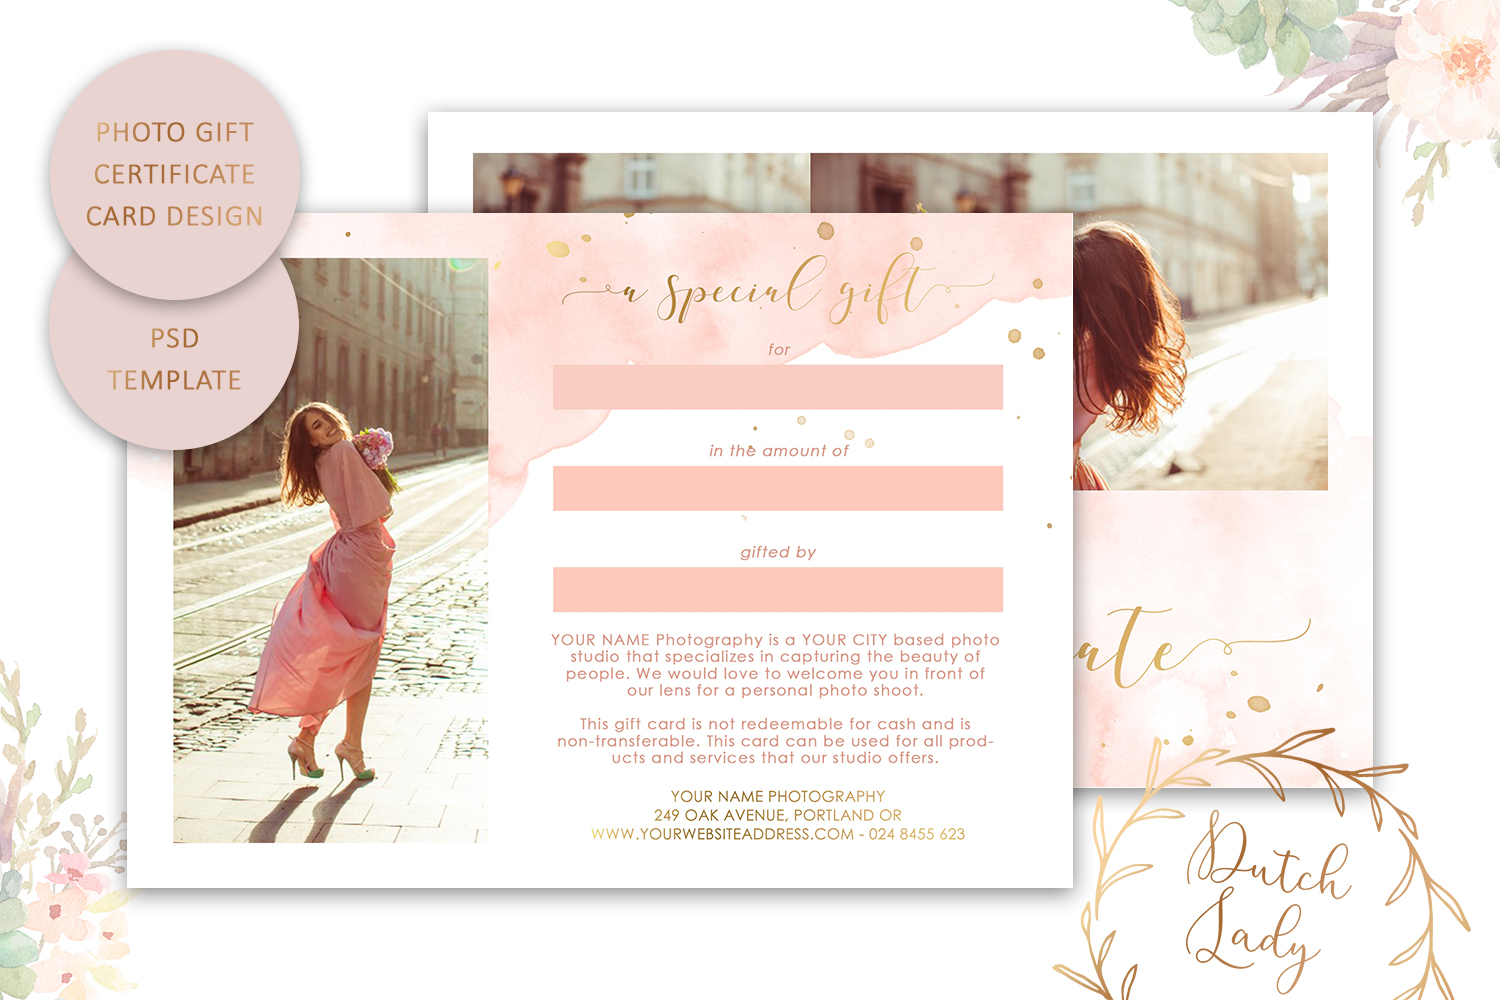 Photo Gift Card Template for Adobe Photoshop - #43 example image 2